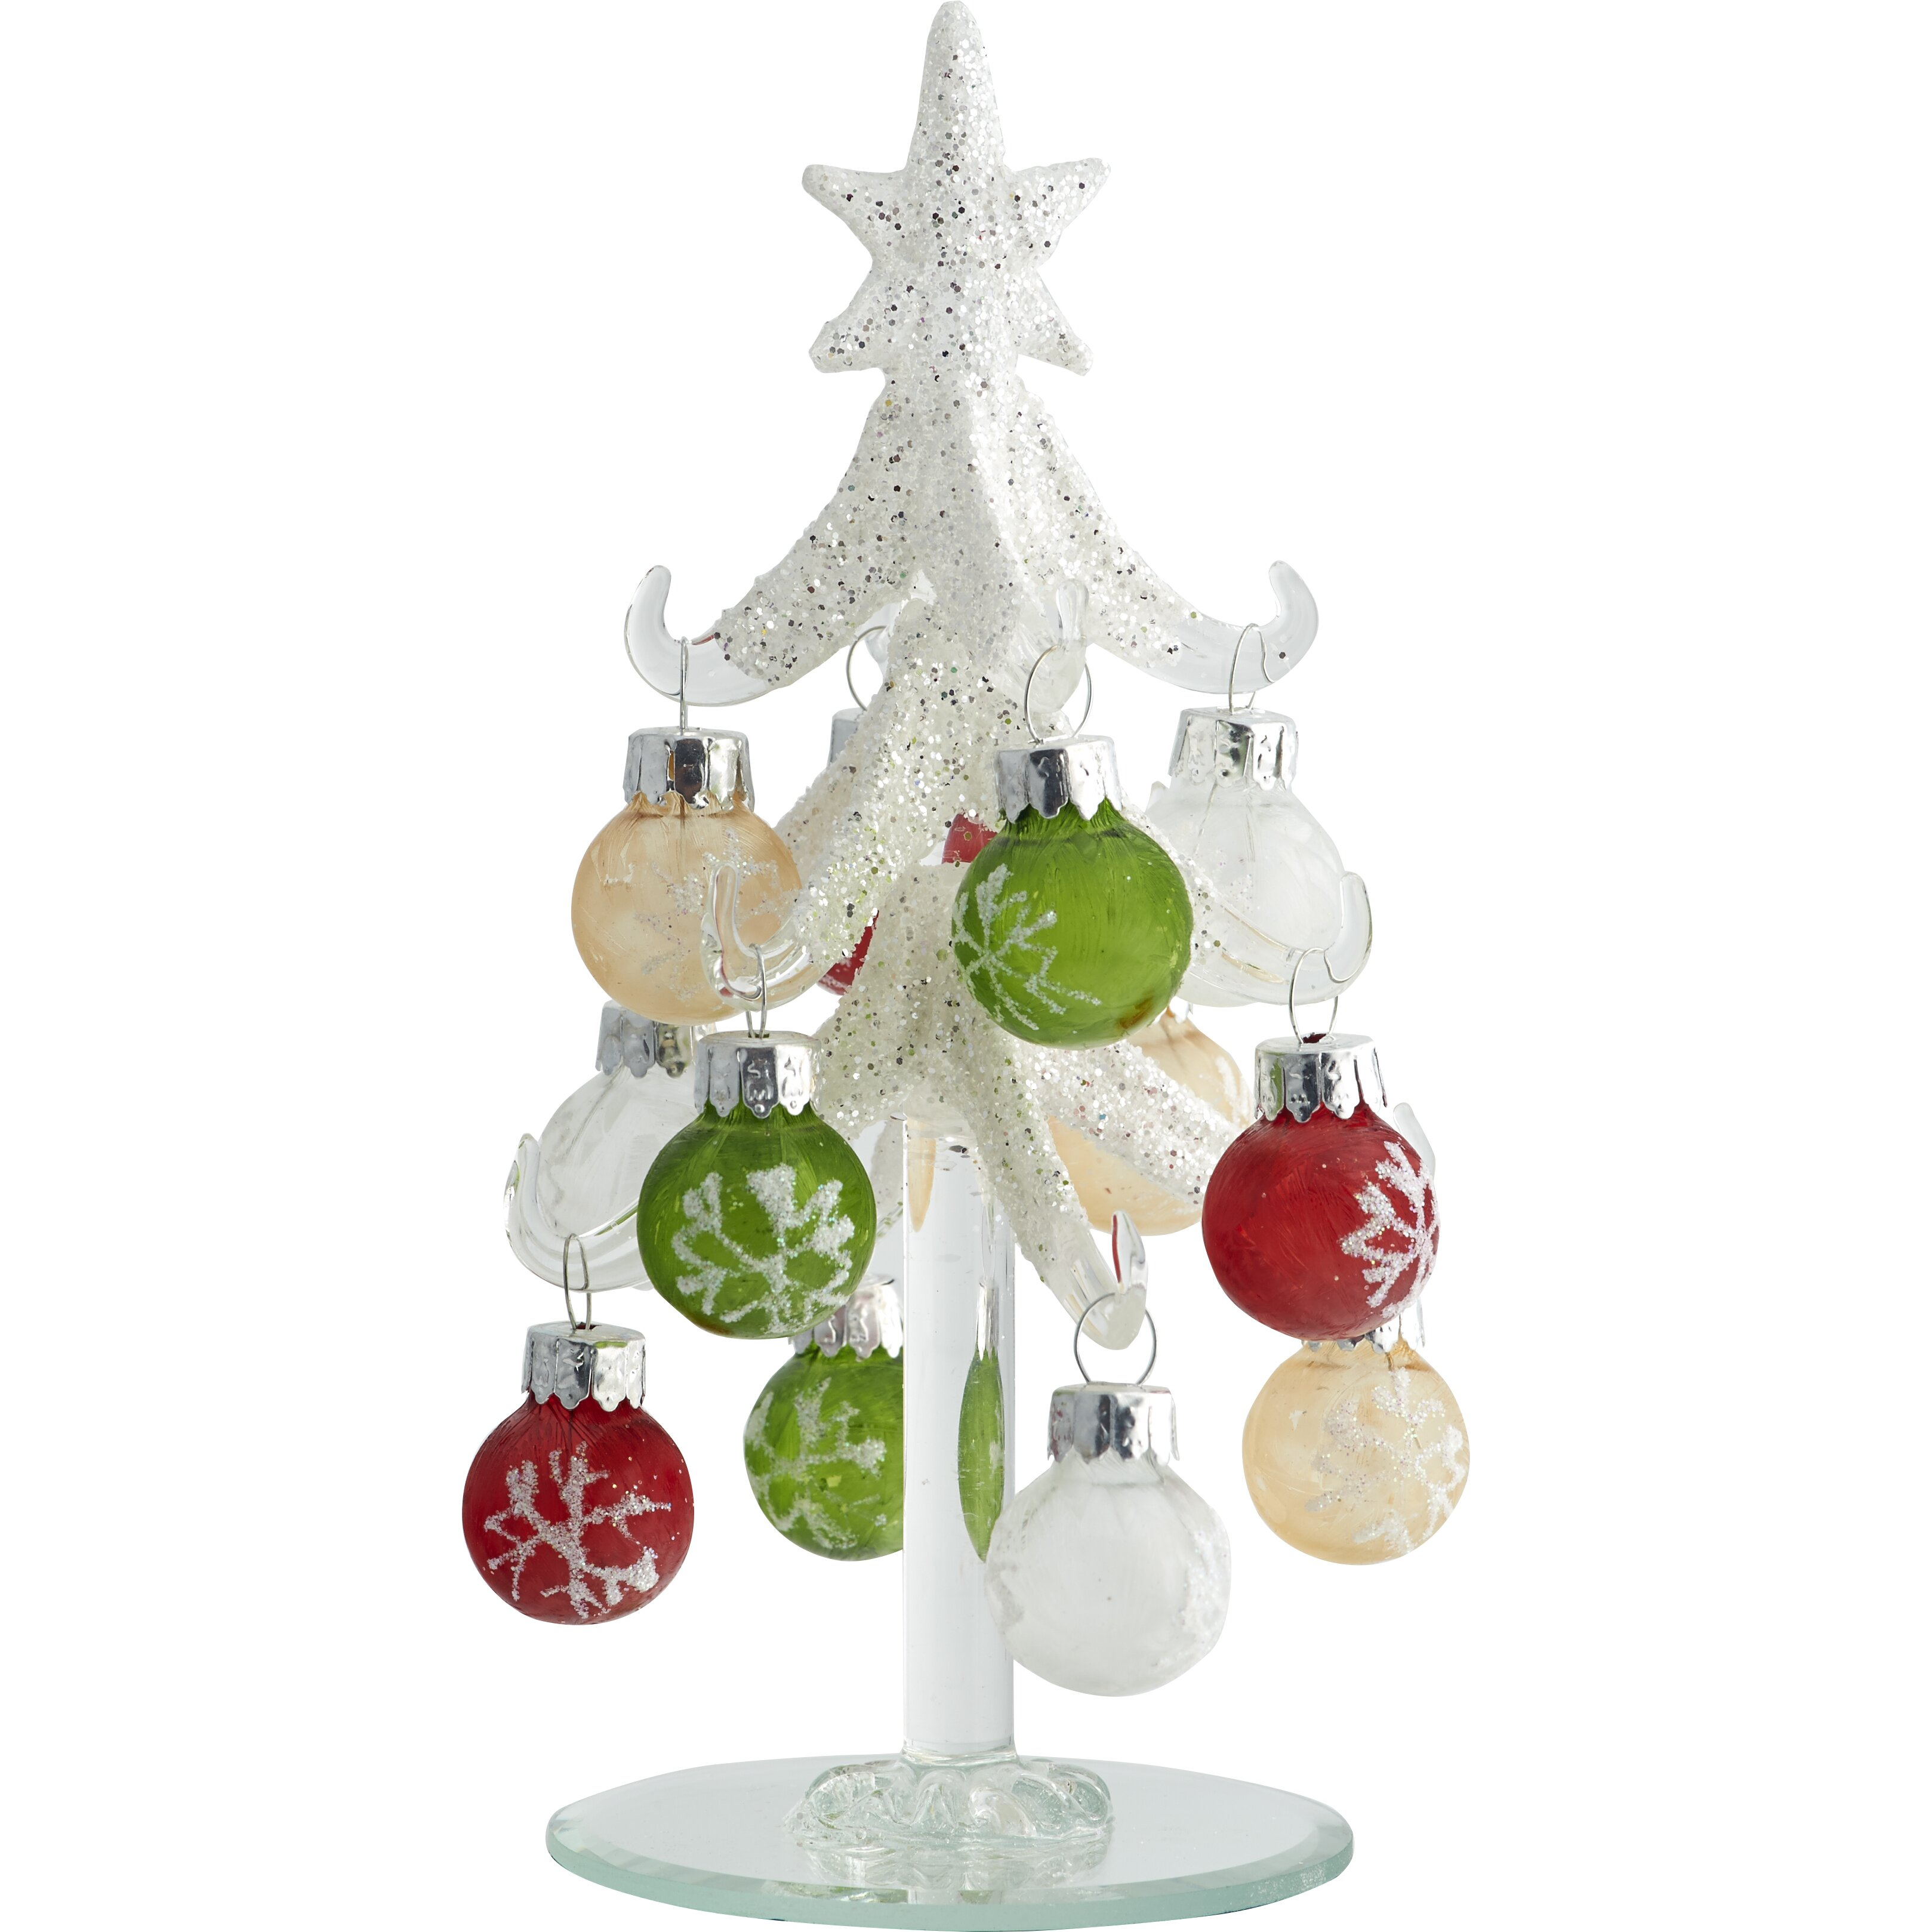 Frosted christmas ornaments - Ls Arts Inc 6 Quot Frosted Christmas Tree With 12 Ornaments